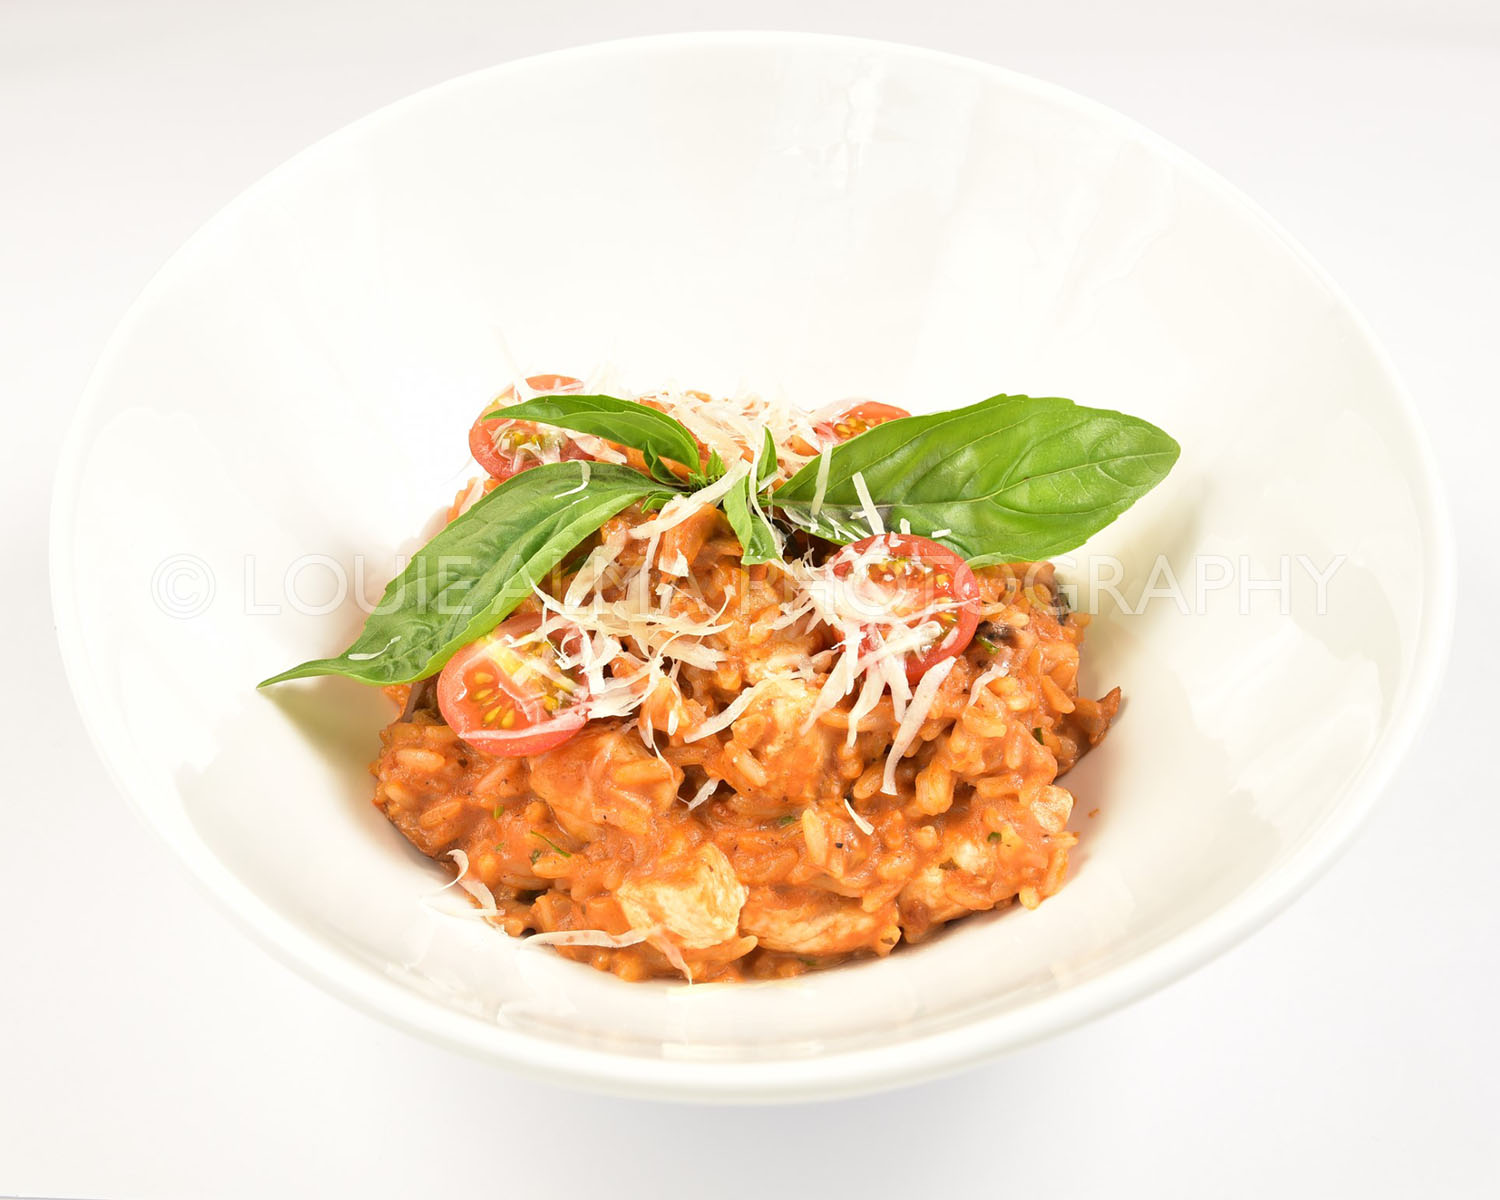 LouieAlmaPhotography_Food_Protein&Carb_Risotto